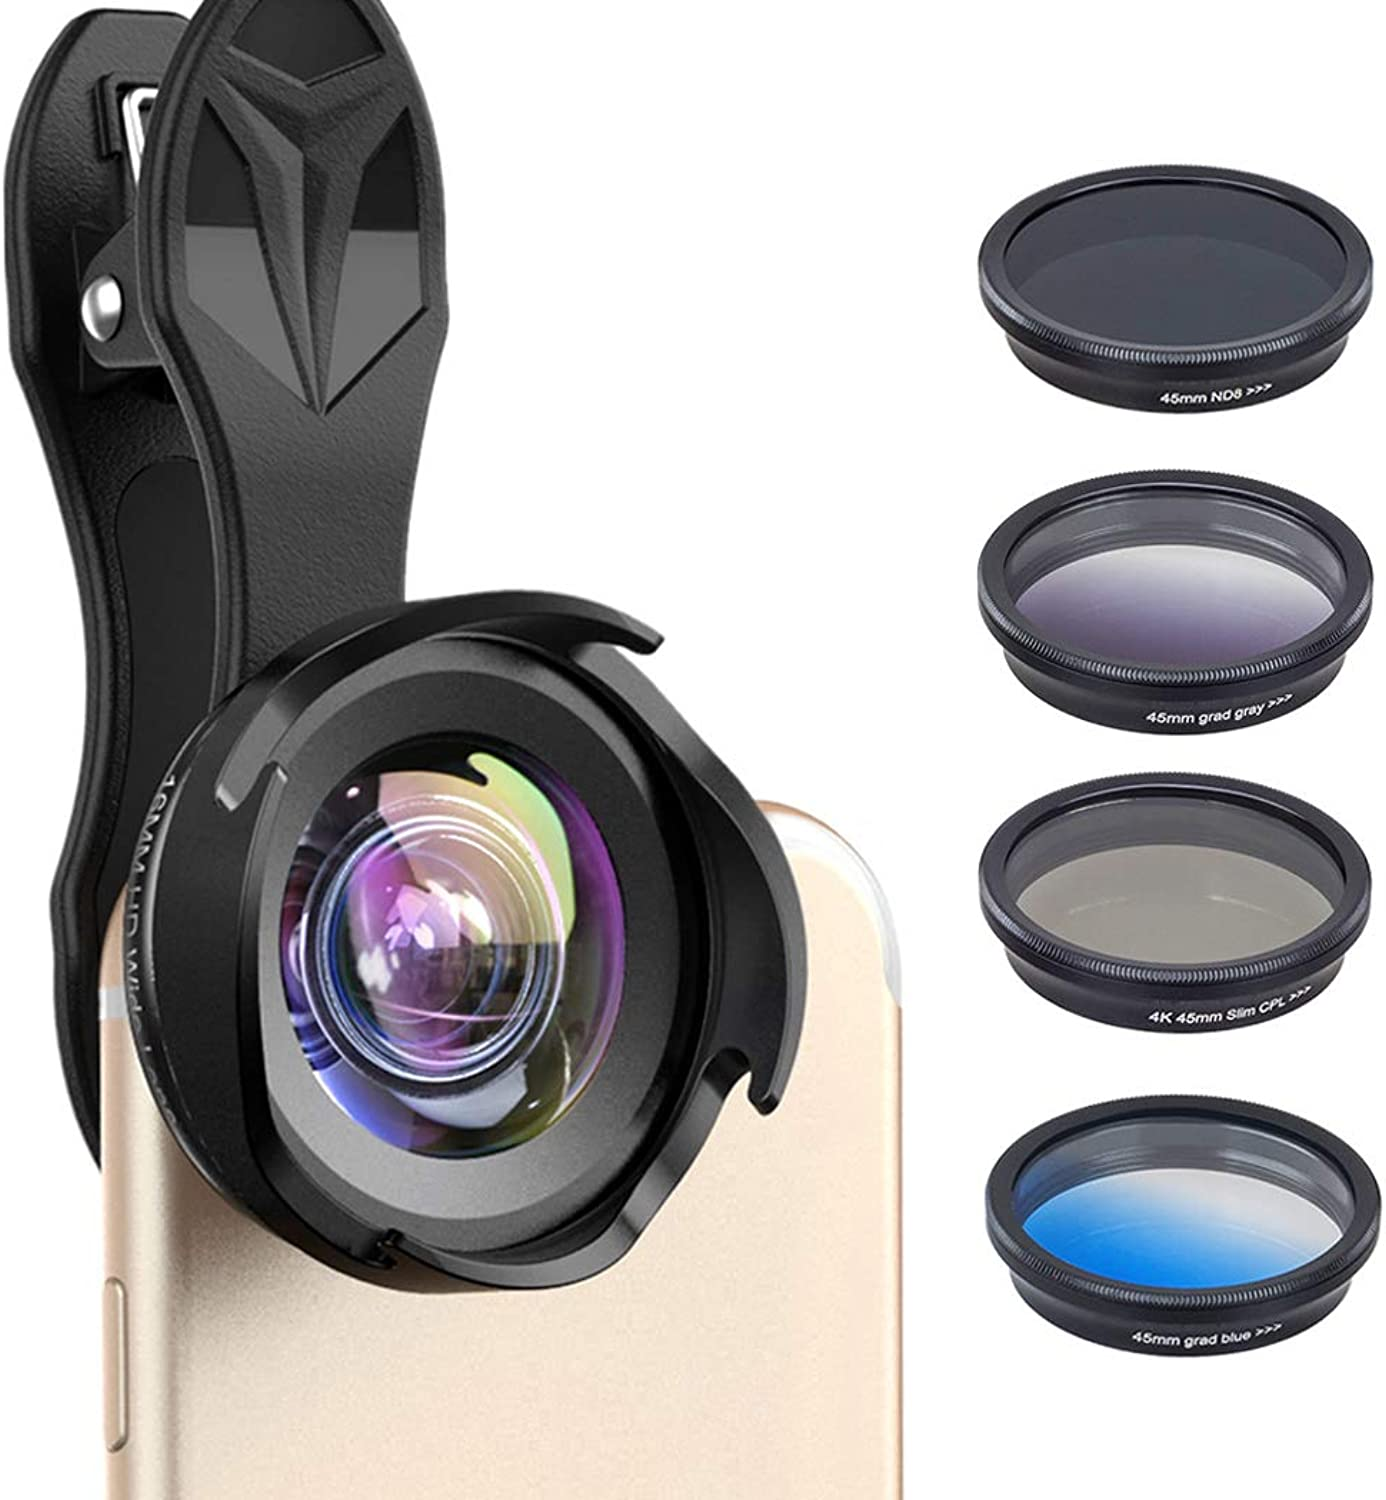 6in1 Mobile Phone Lens Kit Polarization Filter ND Gradient Set Universal External Lens 16X Telescope Lens for iPhone Xiaomi Samsung Huawei and Most Smart Phones Telescope